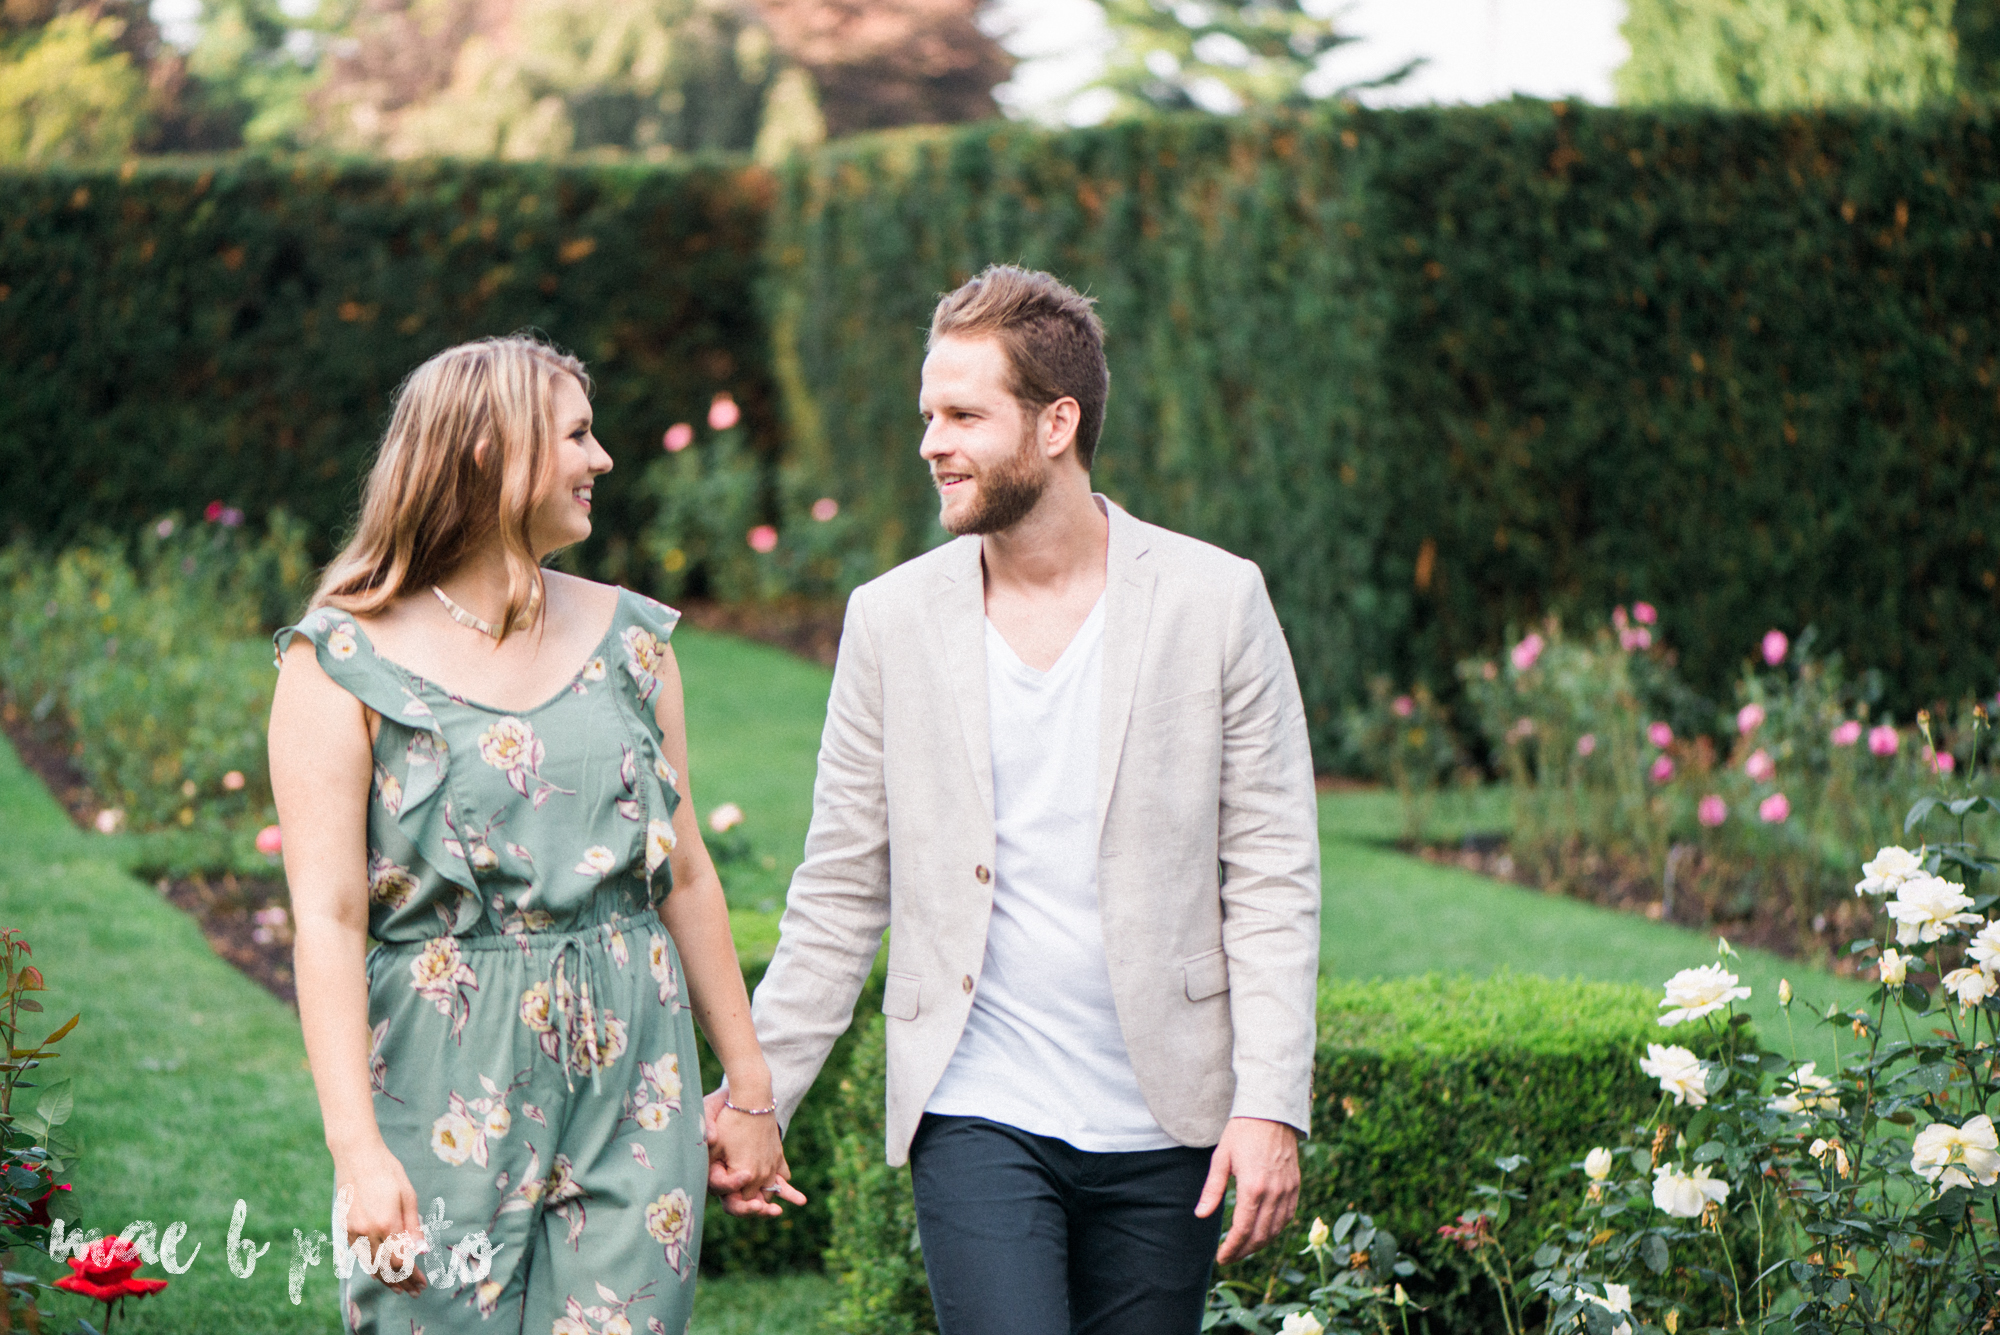 lauren and steve's summer engagement session at the rose gardens and lanterman's mill in mill creek park in youngstown ohio photographed by youngstown wedding photographer mae b photo-10.jpg